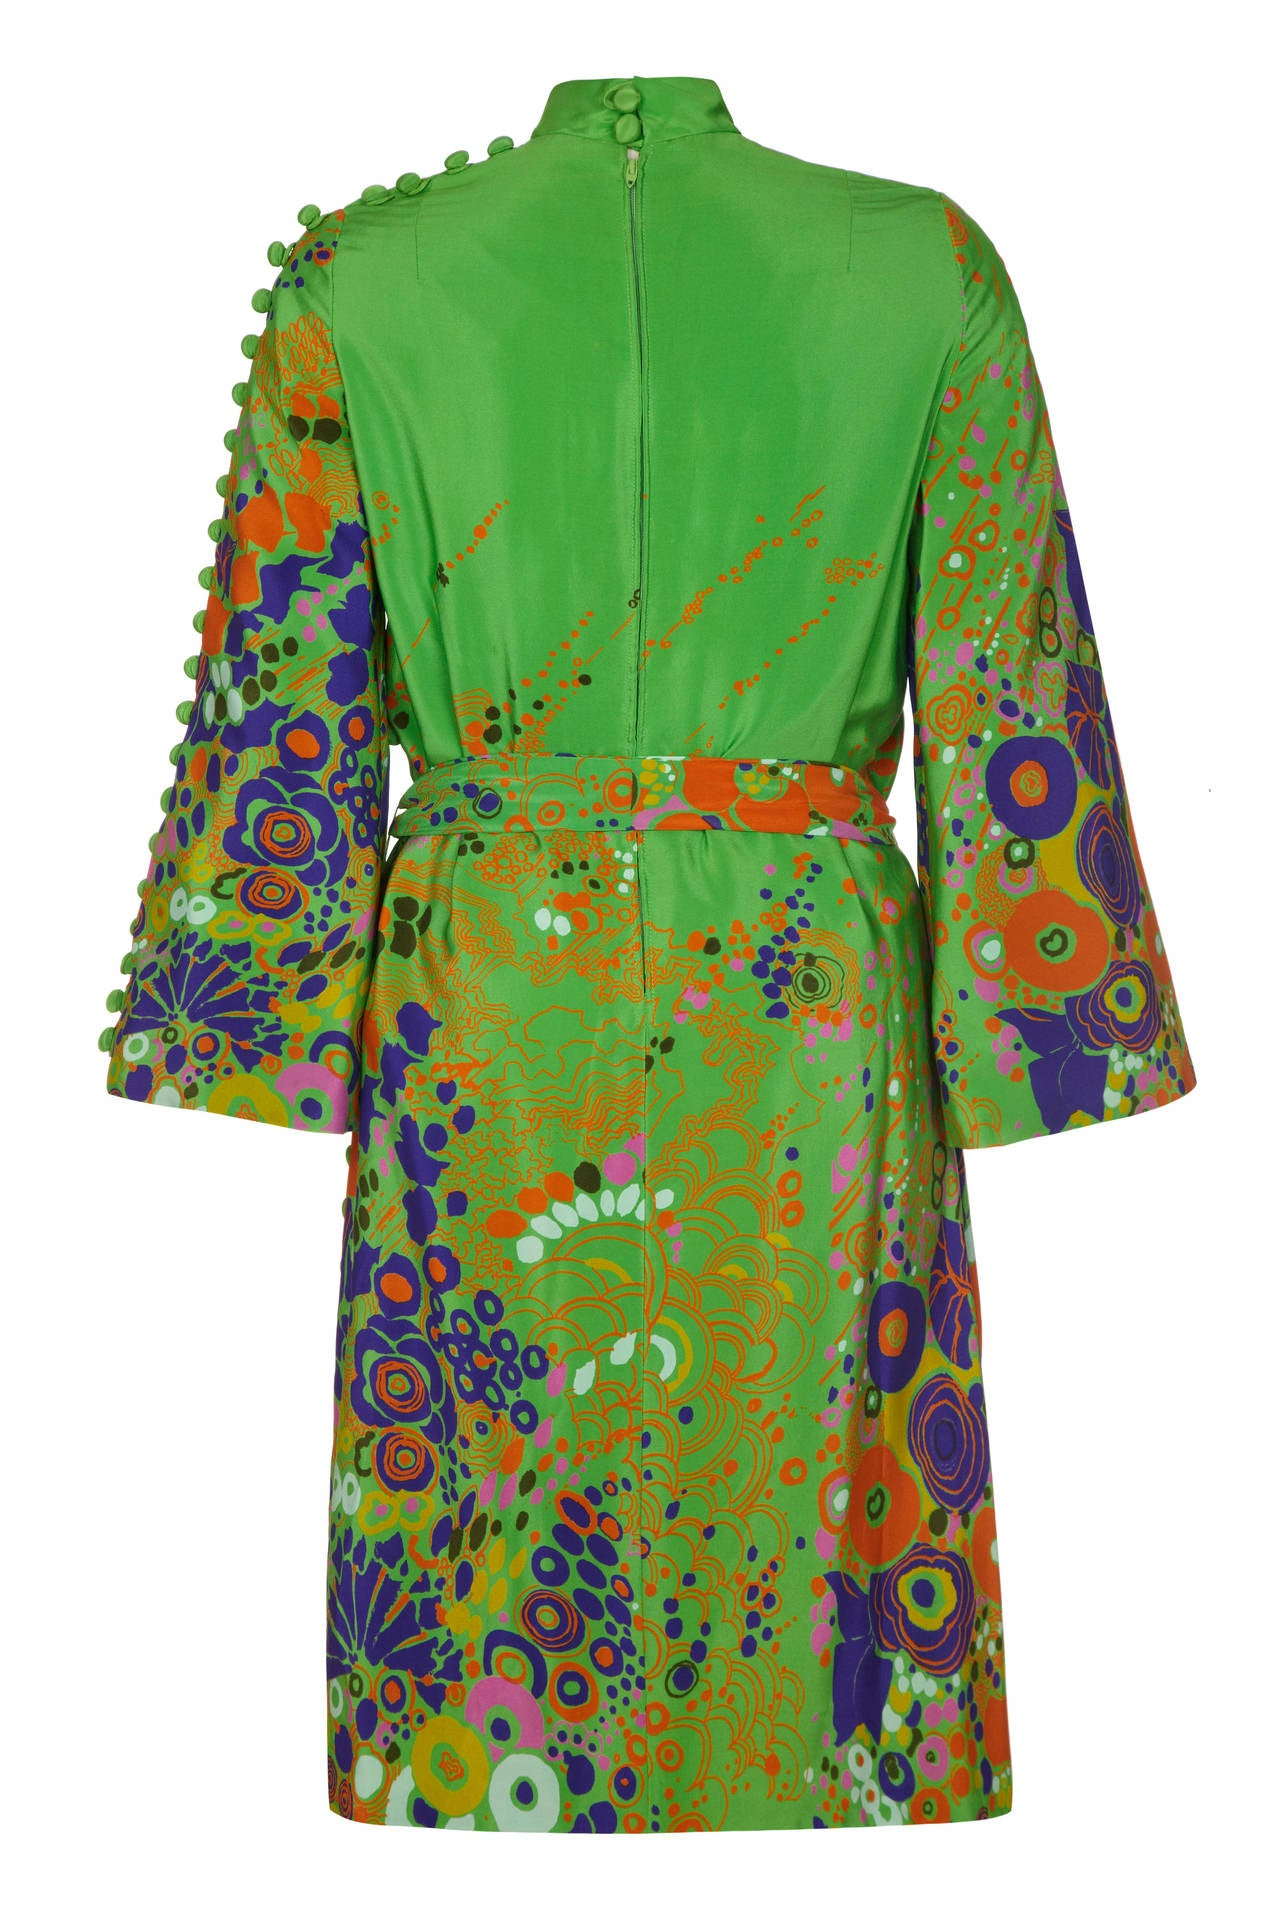 1960s Floral Print Green Dress With Button Detail 2